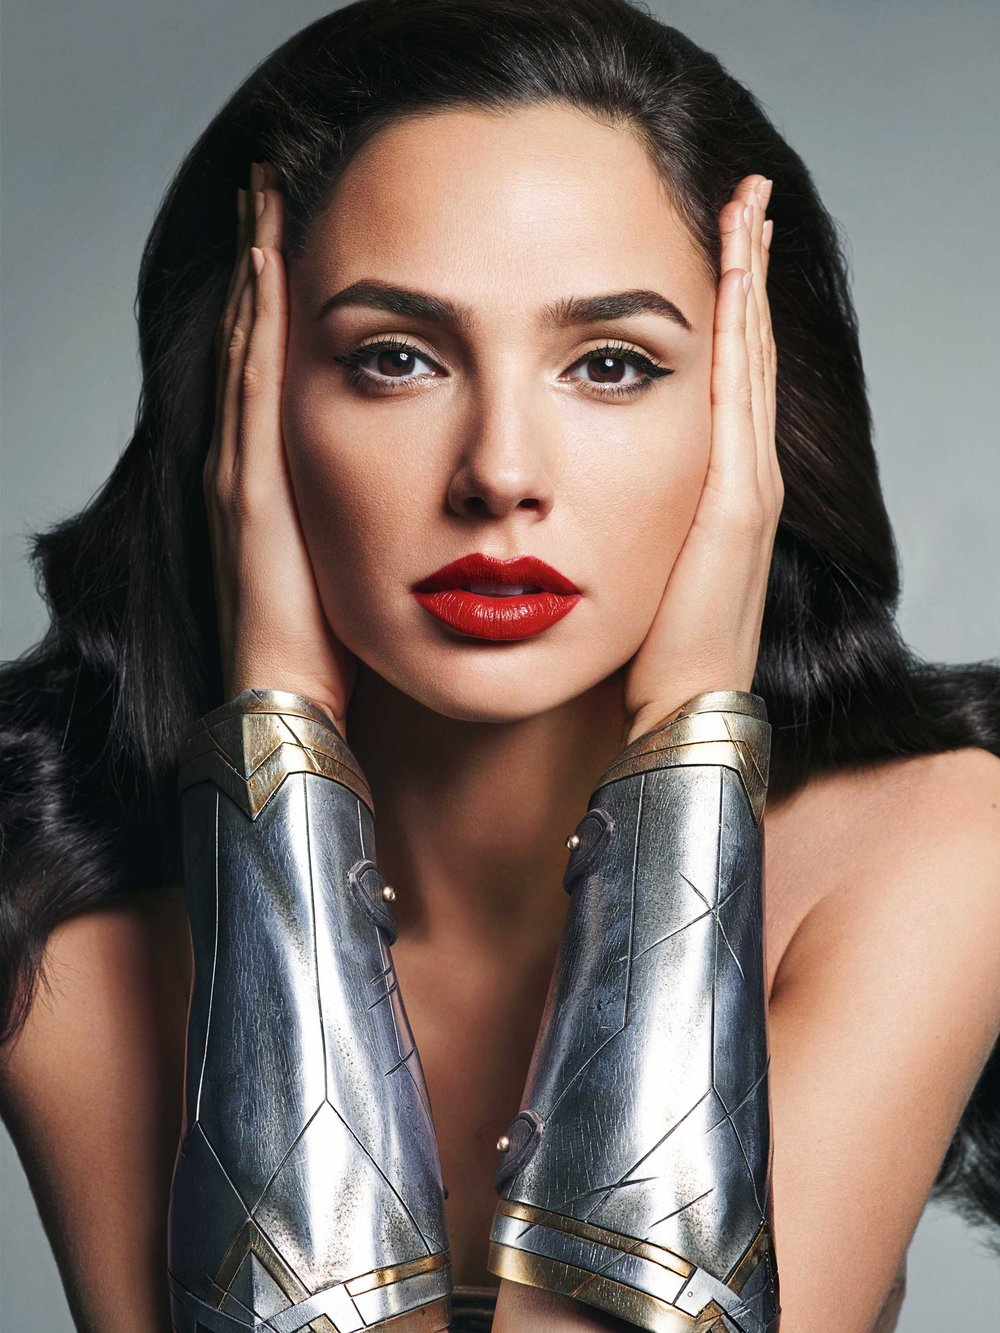 The Year of Wonder Woman